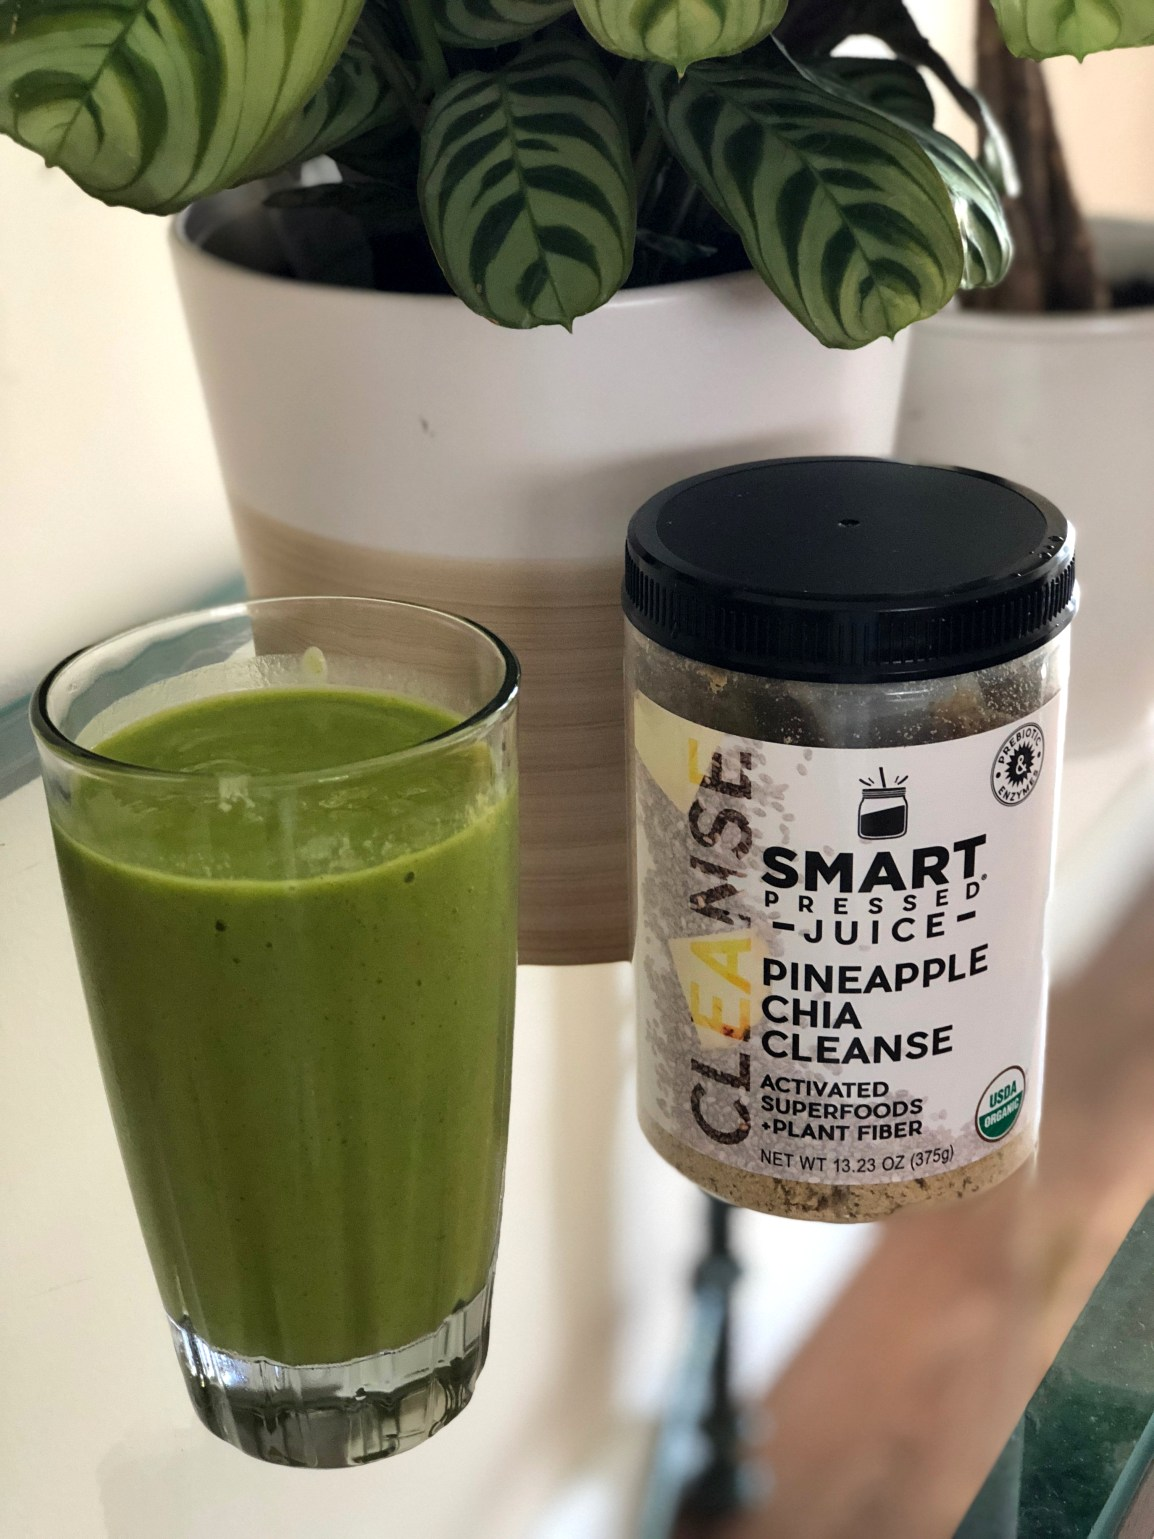 Smart Pressed Juice Pineapple​ Chia Cleanse Smoothie and Product